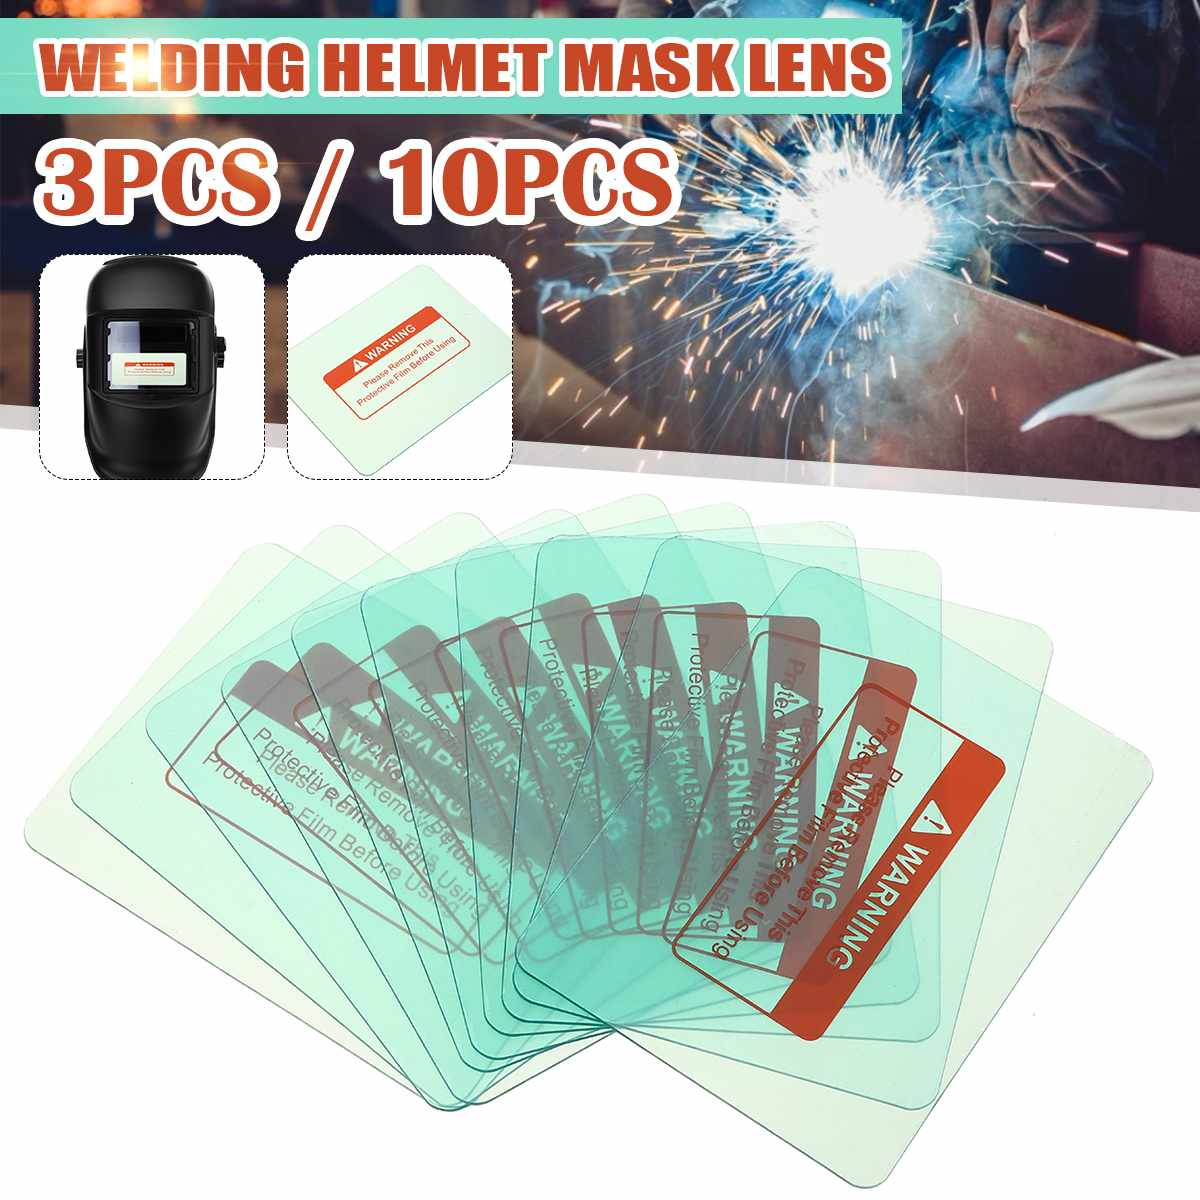 3pcs/10pcs 116 X 90mm Outside Protective Plastic Cover Transparent Welding Helmet Glass Plate Lens For Darkening Helmet Welding